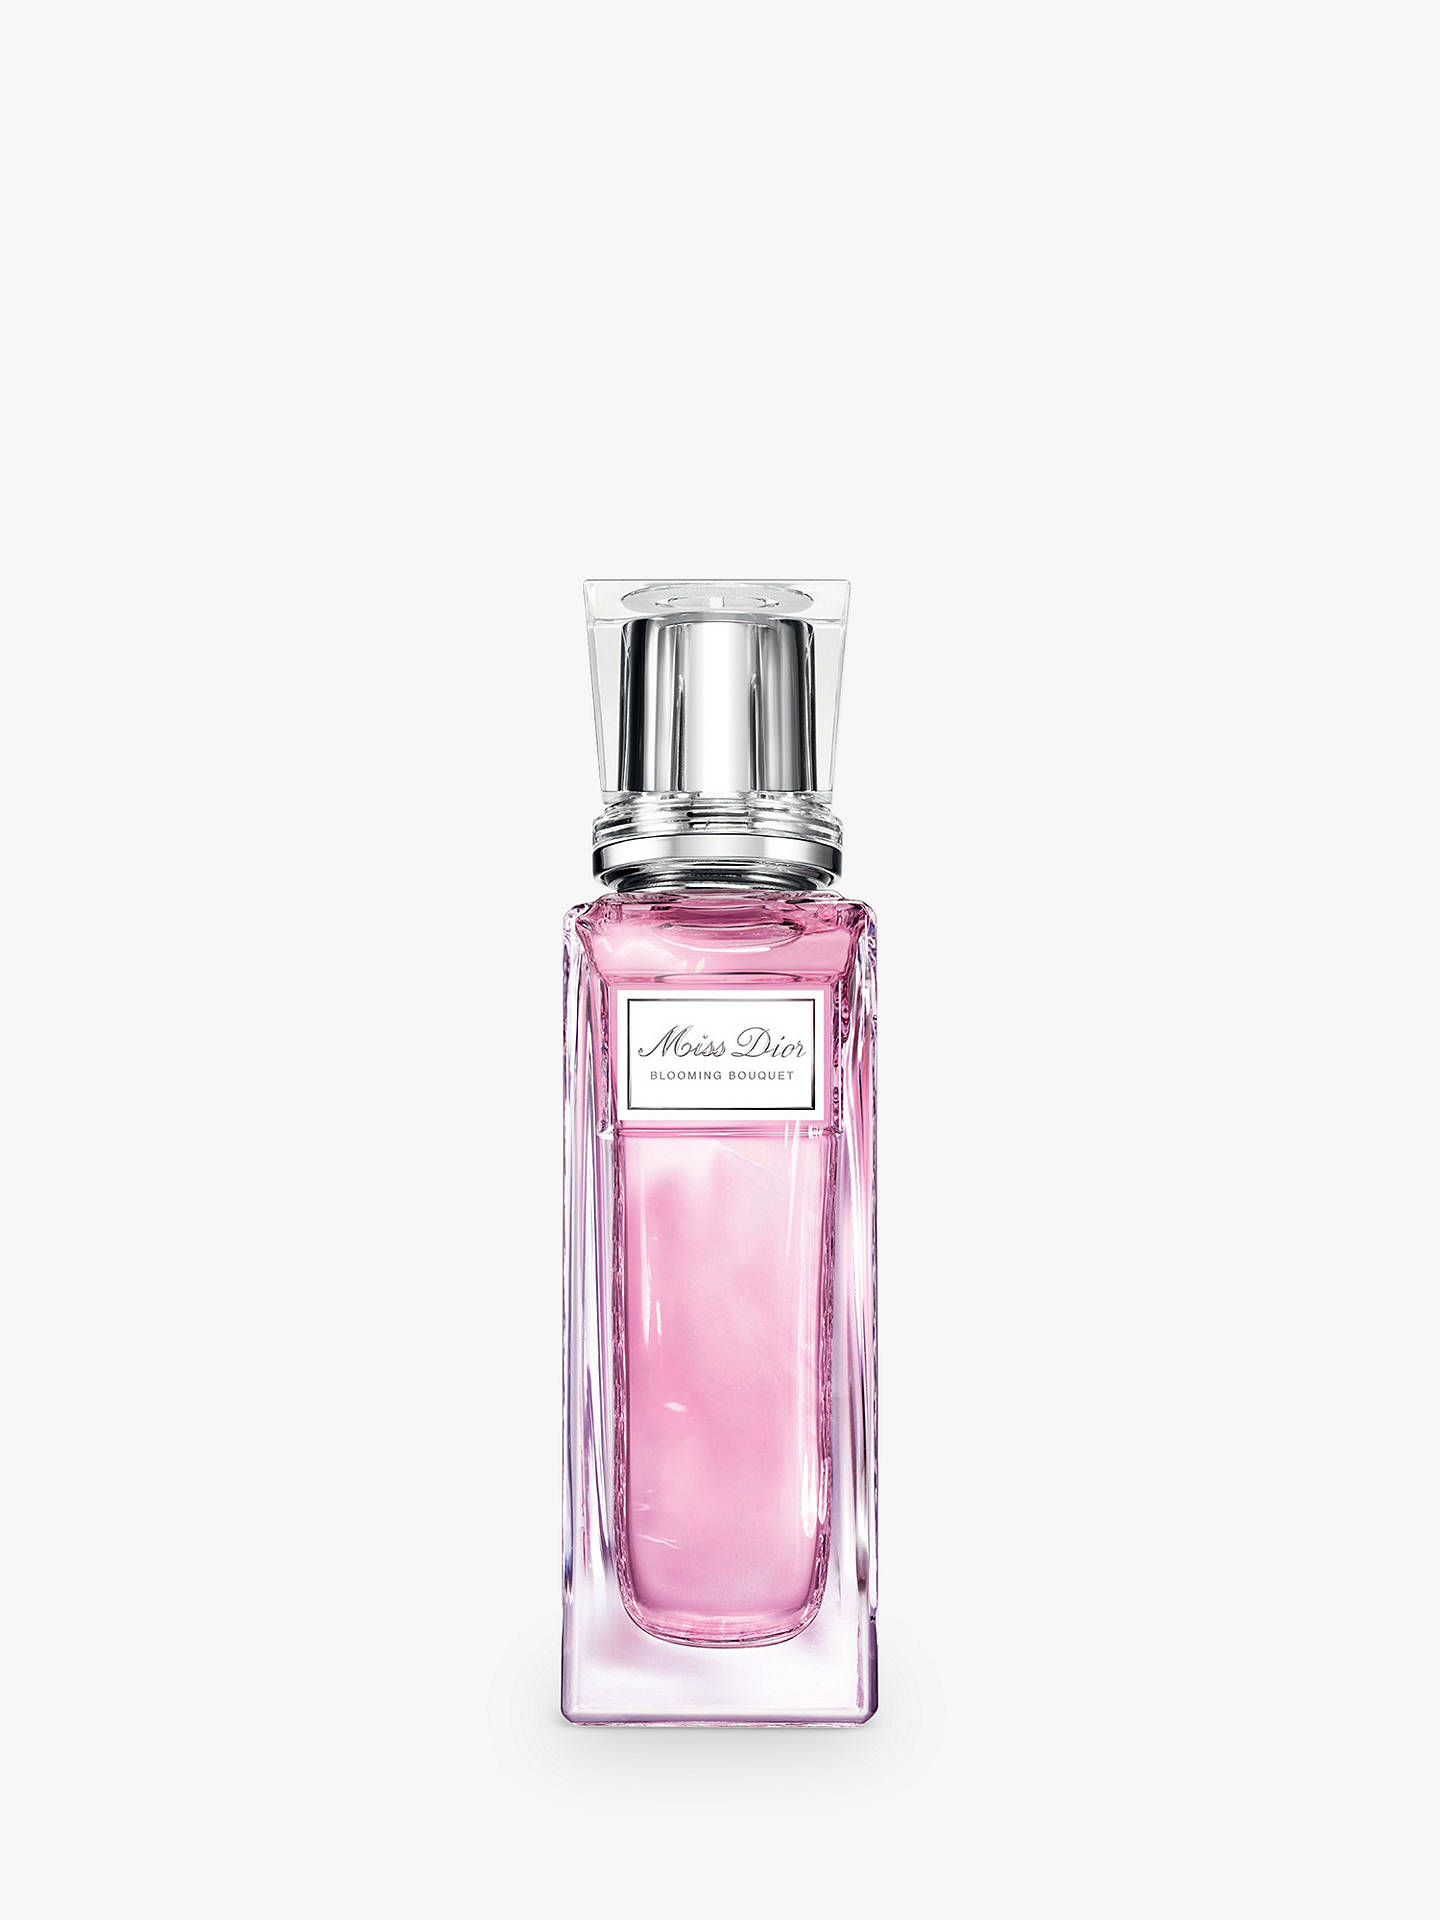 Dior Miss Blooming Bouquet Roller Pearl 20ml At John Lewis Fragrance Oil Chocolate 20 Ml Buydior Online